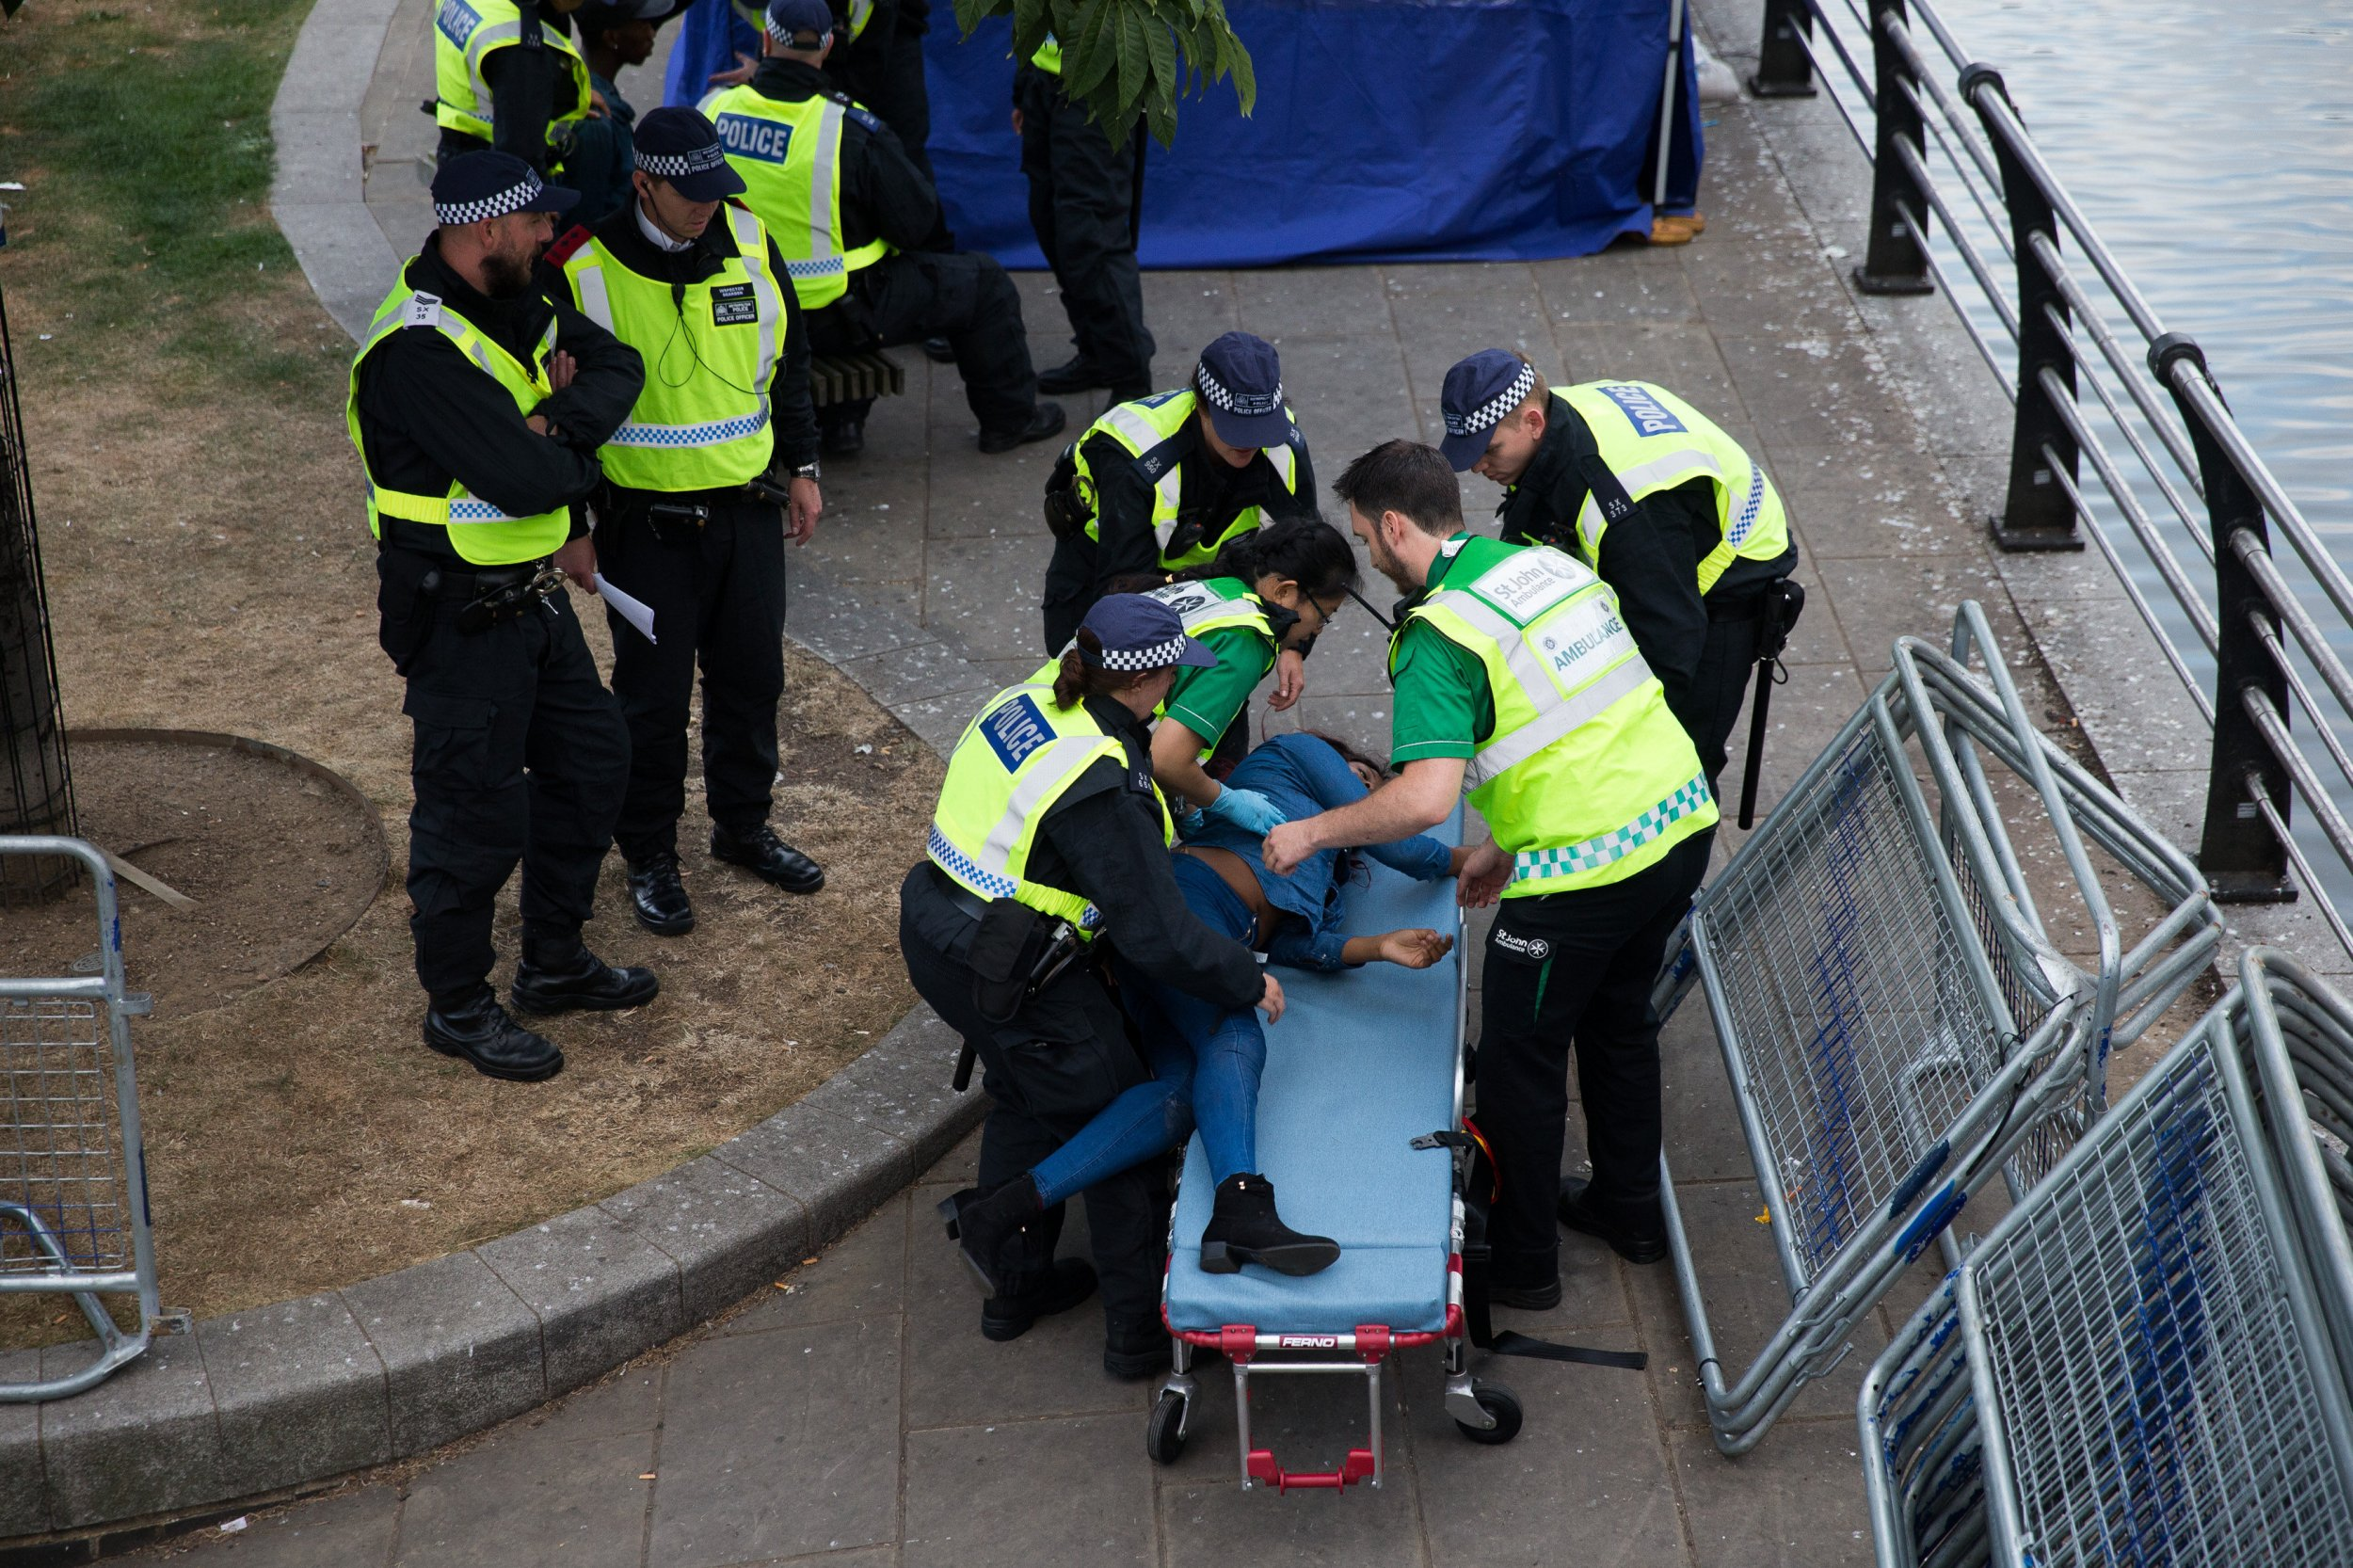 A woman is placed on a stretcher by Police Officers at Notting Hill Carnival, London. 28 August 2016.